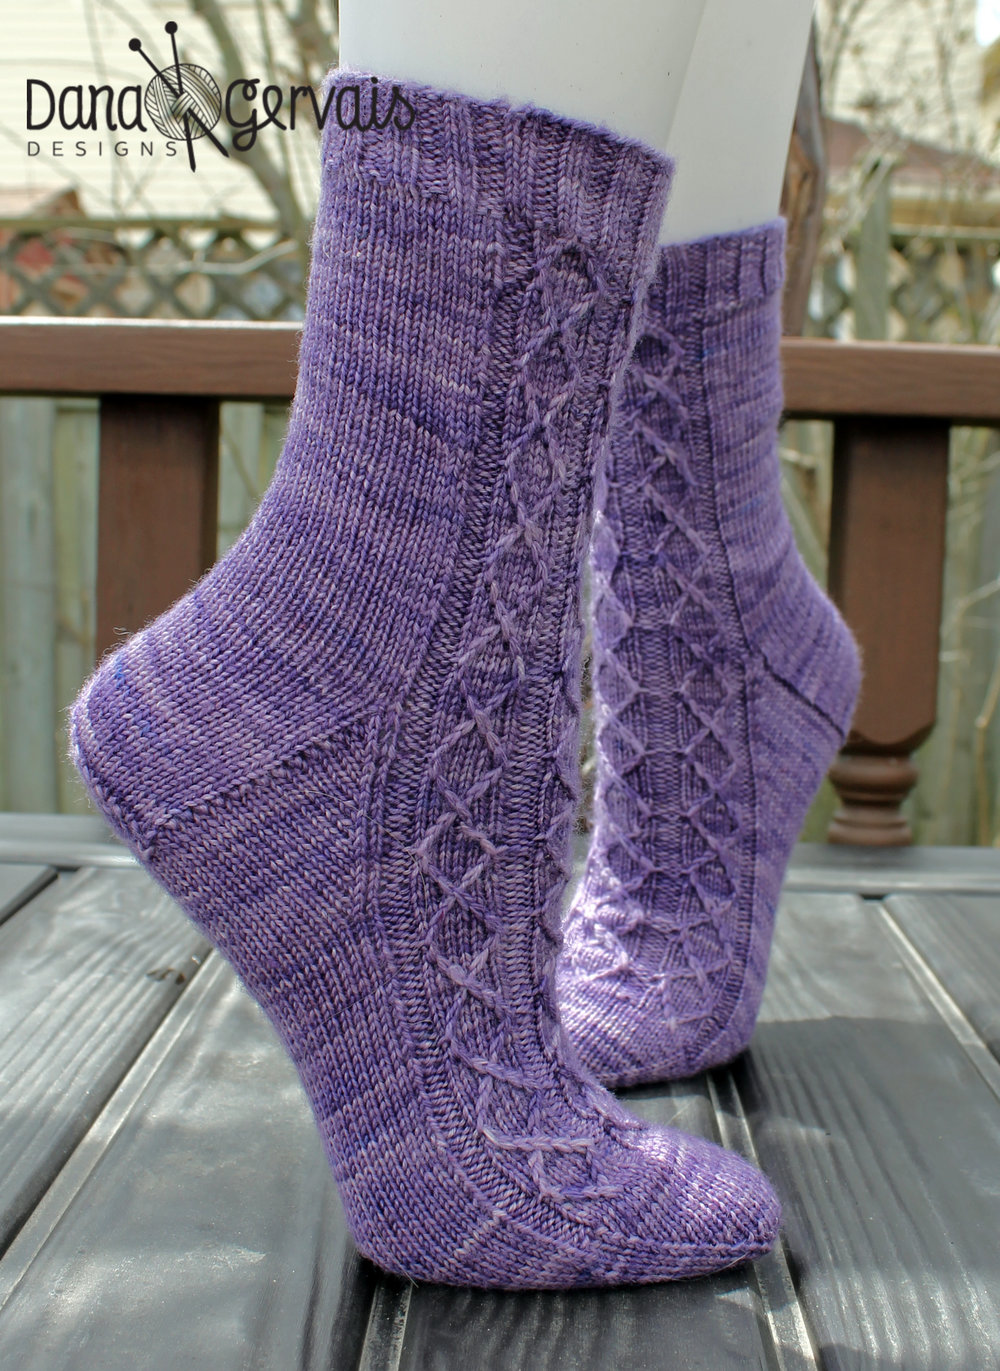 Heliotrope is an example of a sock with a wedge toe